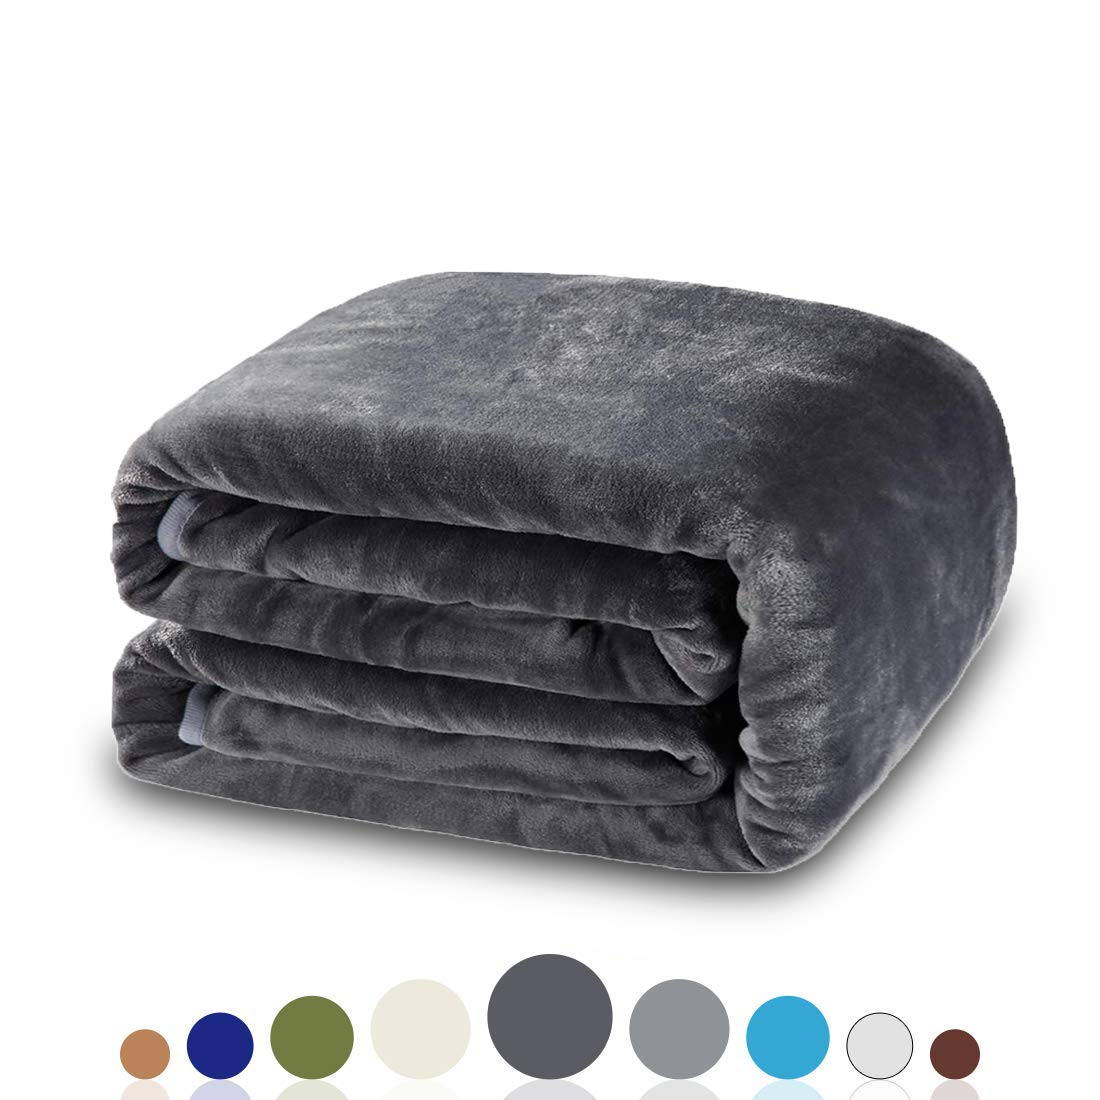 (Queen (230cm -by-230cm), Dark Grey) - Balichun Luxury 330 GSM Fleece Blanket Super Soft Warm Fuzzy Lightweight Bed or Couch Blanket Twin/Queen/King Size(Queen,Dark Grey) B01CSA8OZW ダークグレー Queen (90-Inch-by-90-Inch)